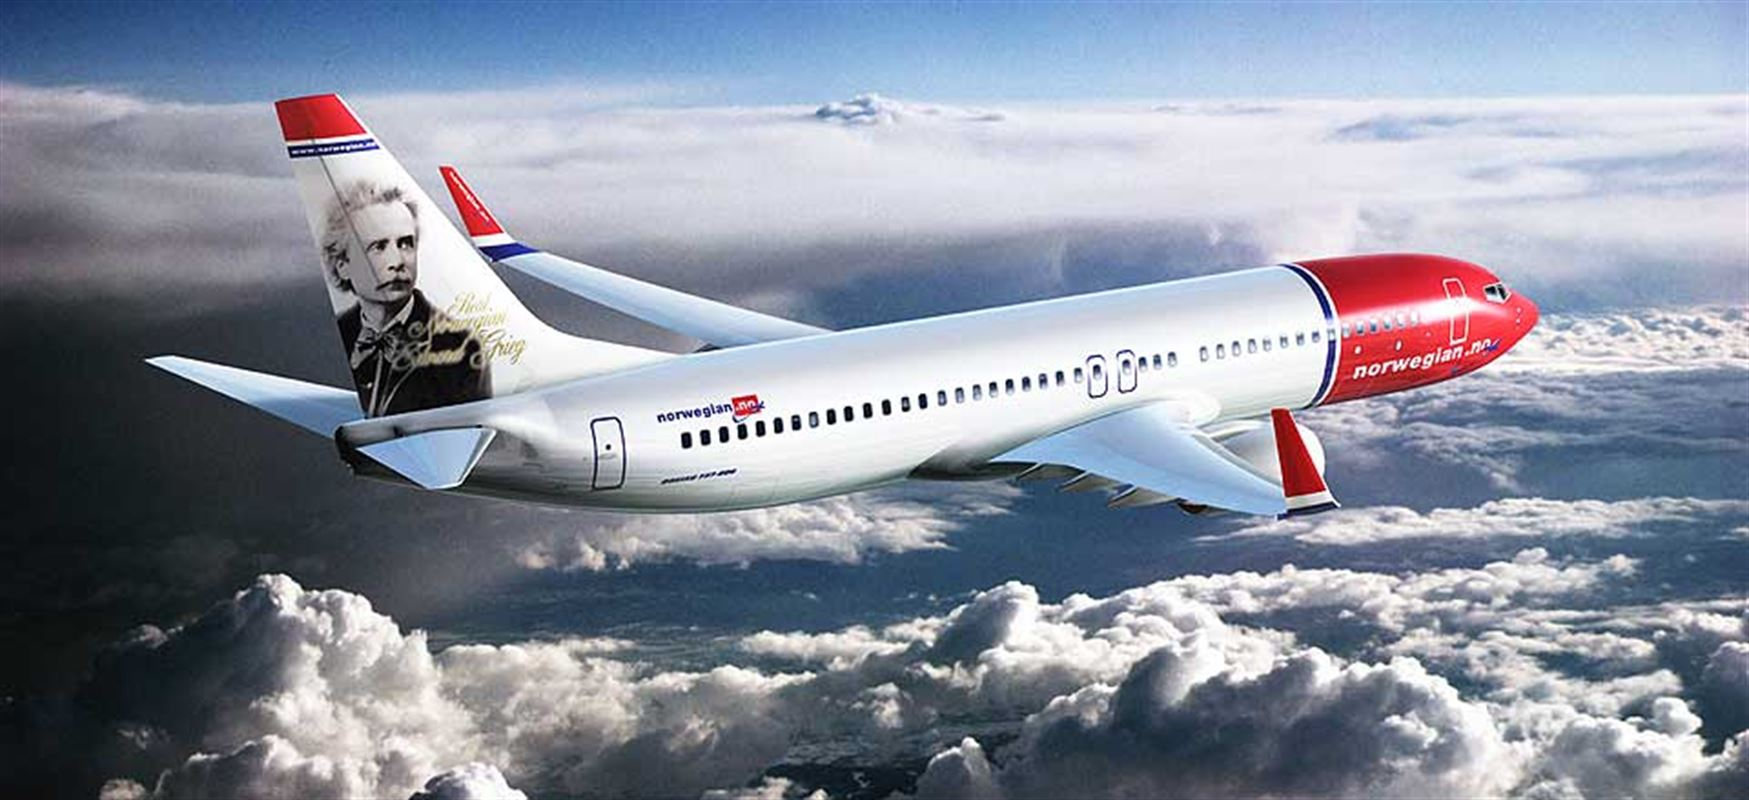 norwegian-airlines-flying-above-the-clouds